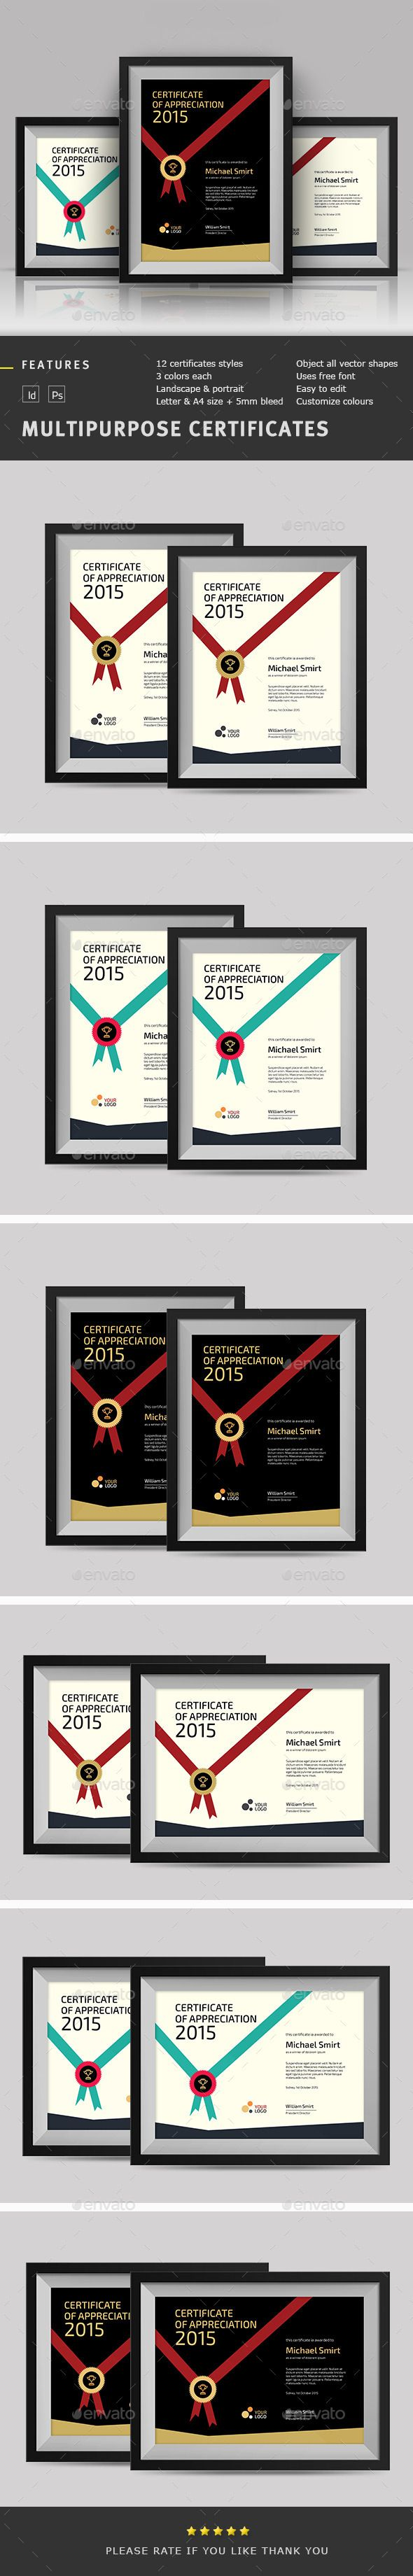 #Multipurpose #Certificates - Certificates #Stationery Download here: https://graphicriver.net/item/multipurpose-certificates/11664978?ref=alena994